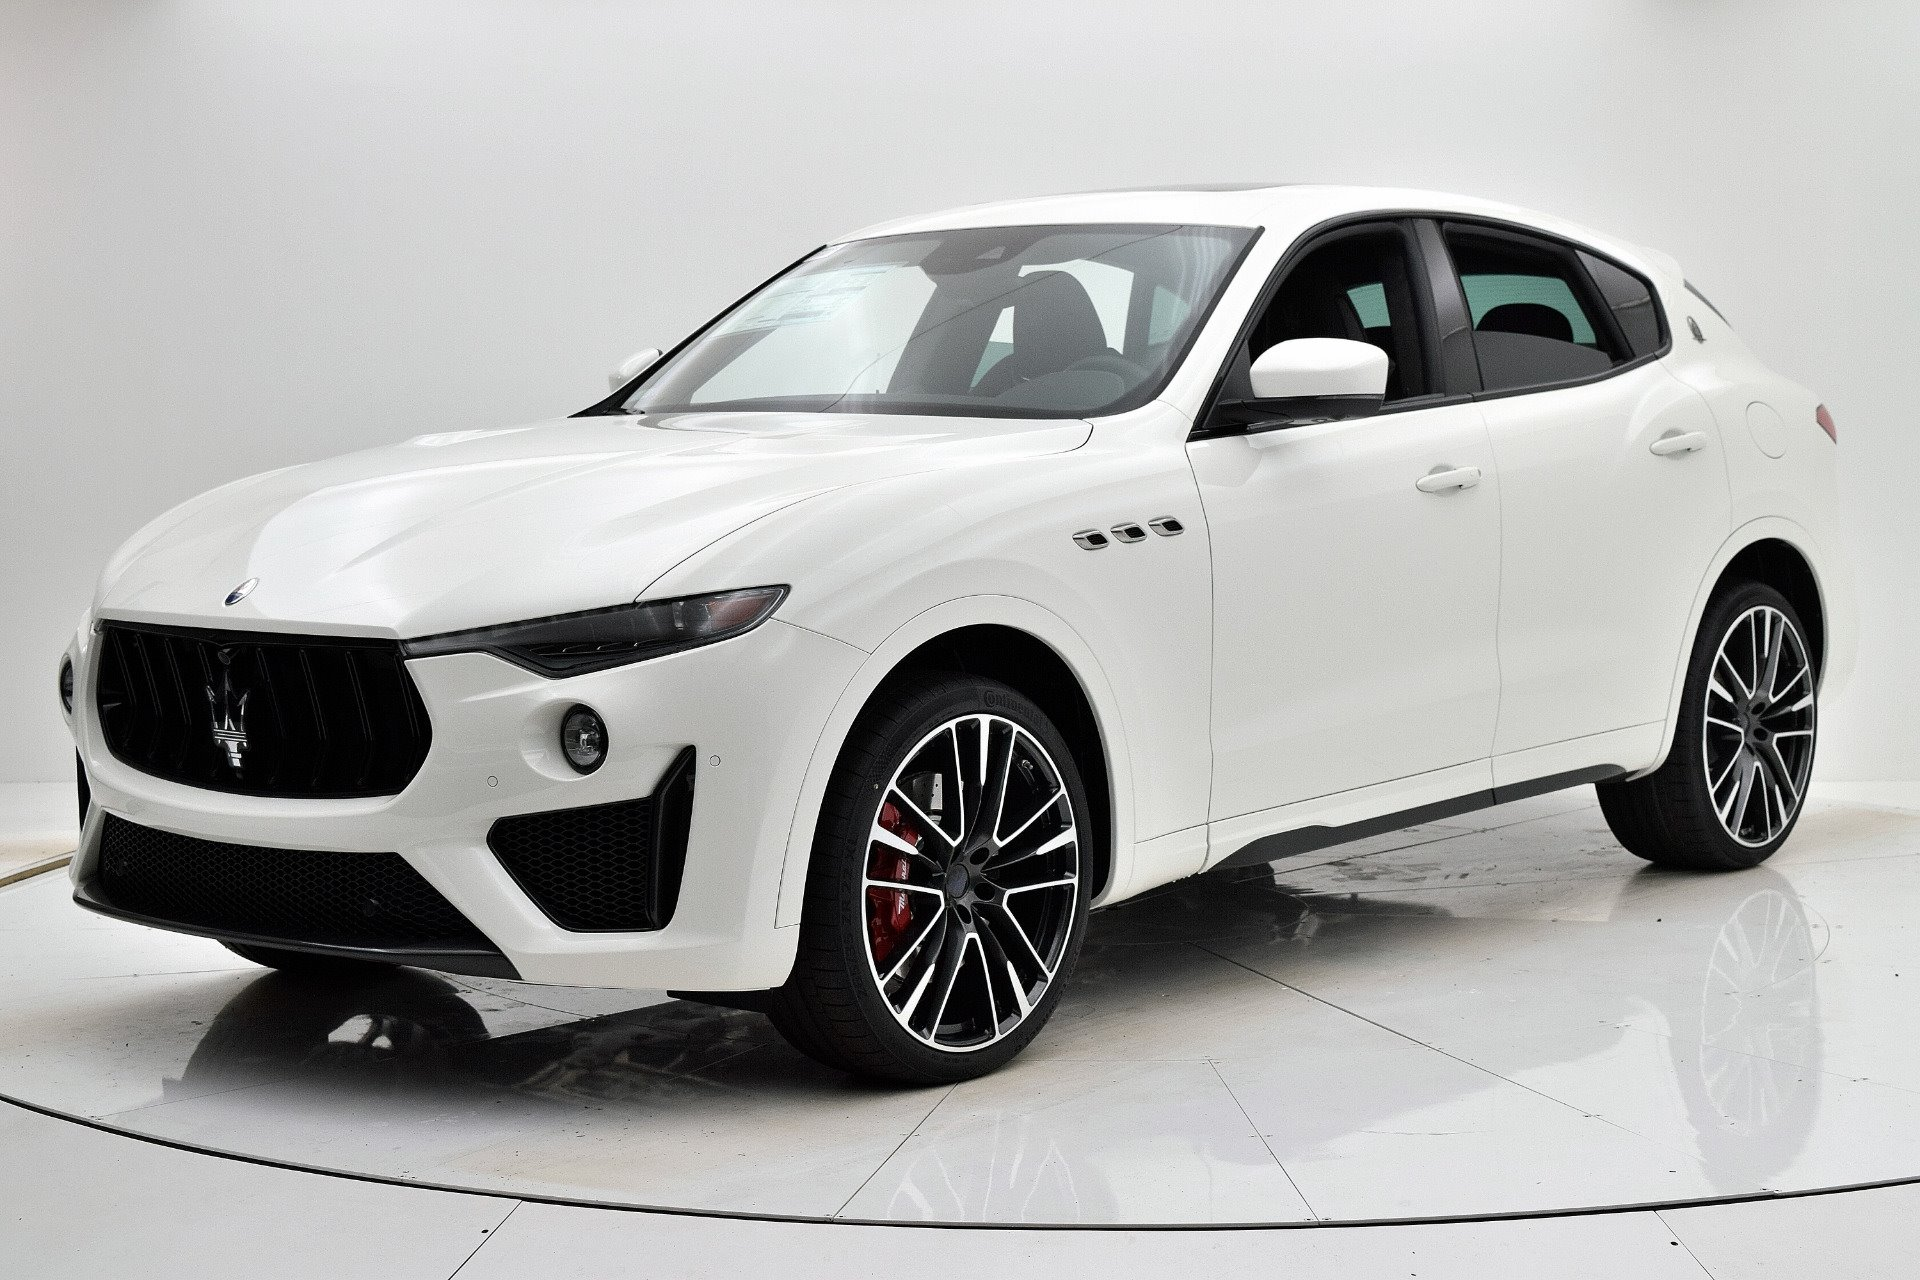 New 2019 Maserati-Levante Trofeo Levante Trofeo for sale $169,980 at M and V Leasing in Brooklyn NY 11223 1